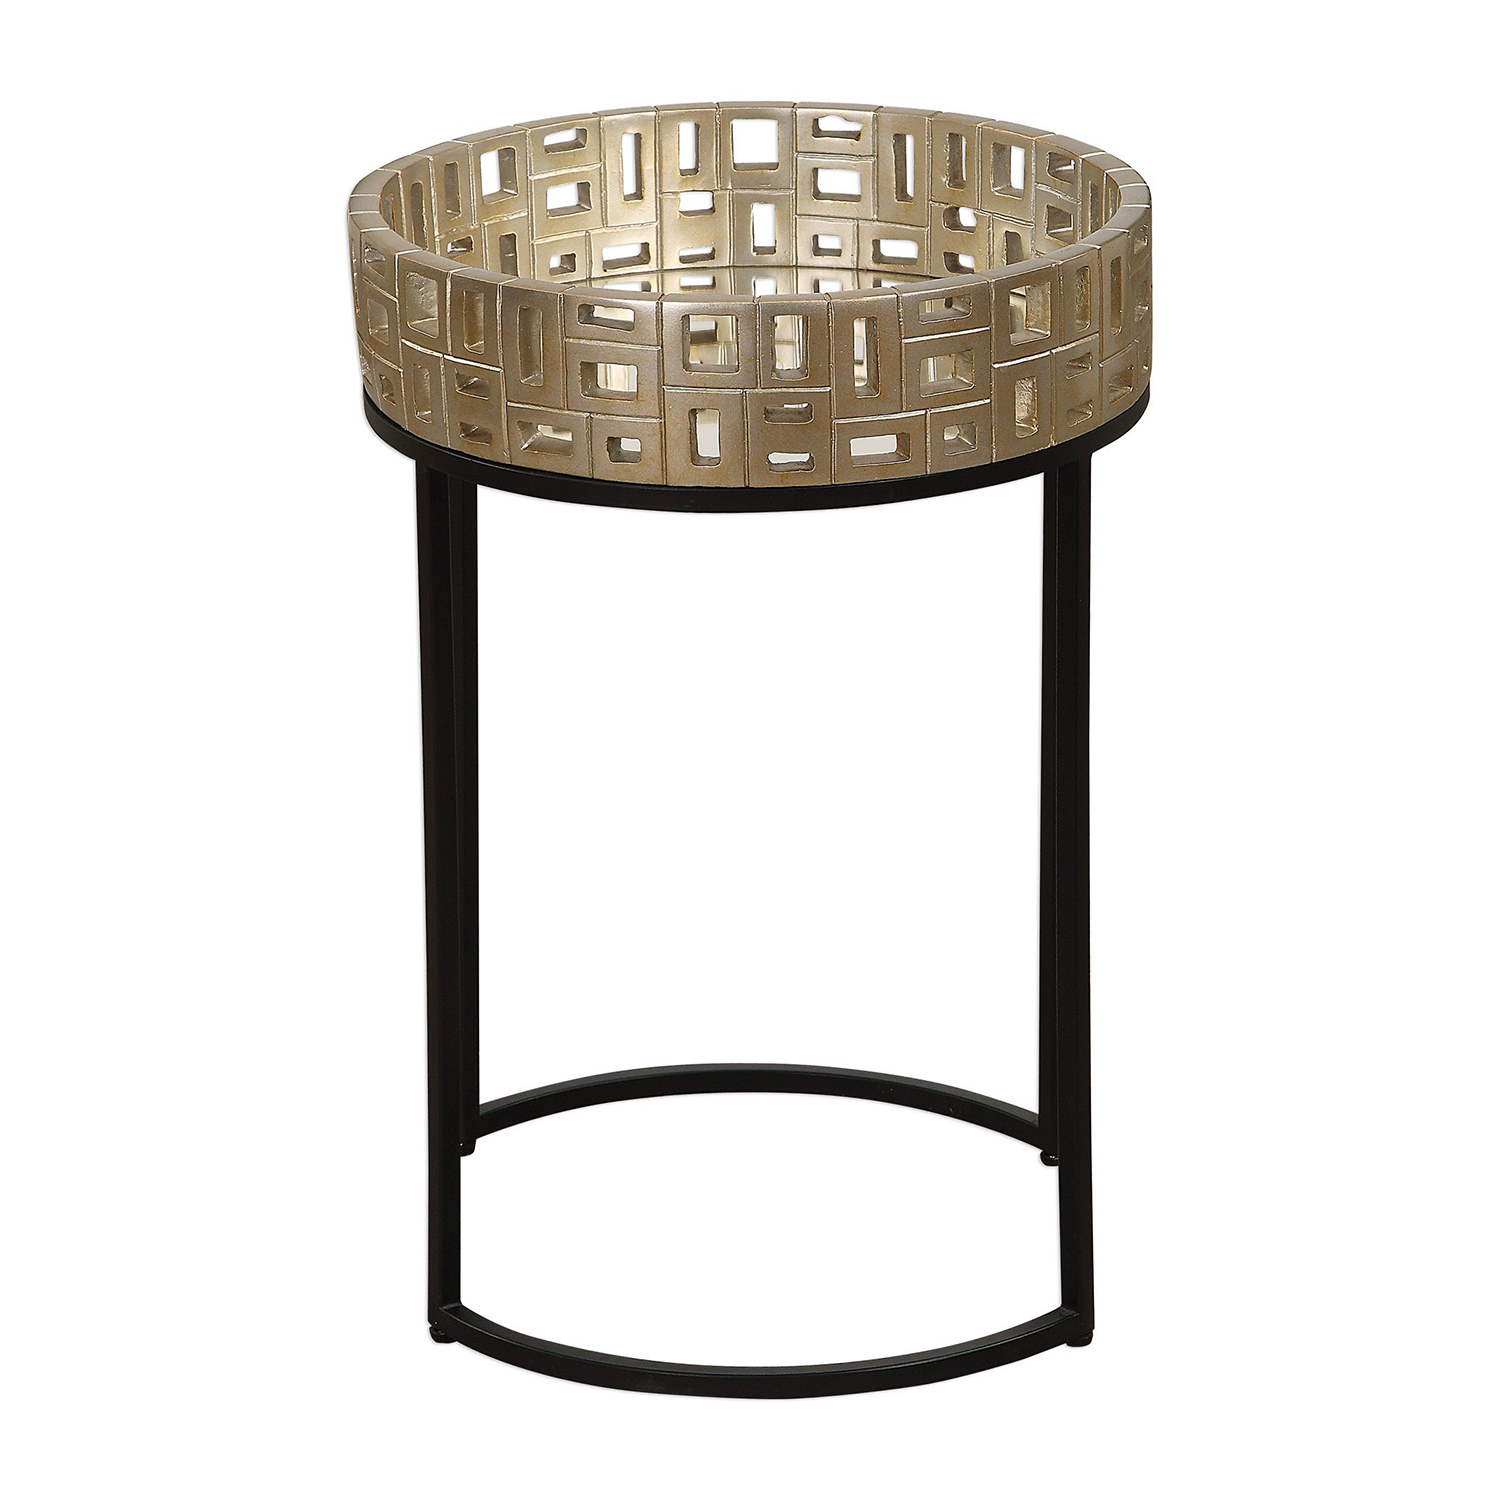 uttermost aven black and gold accent table bellacor hover zoom coffee tables wooden home decor patio with ice bucket ikea garage storage cast aluminum set end for small spaces